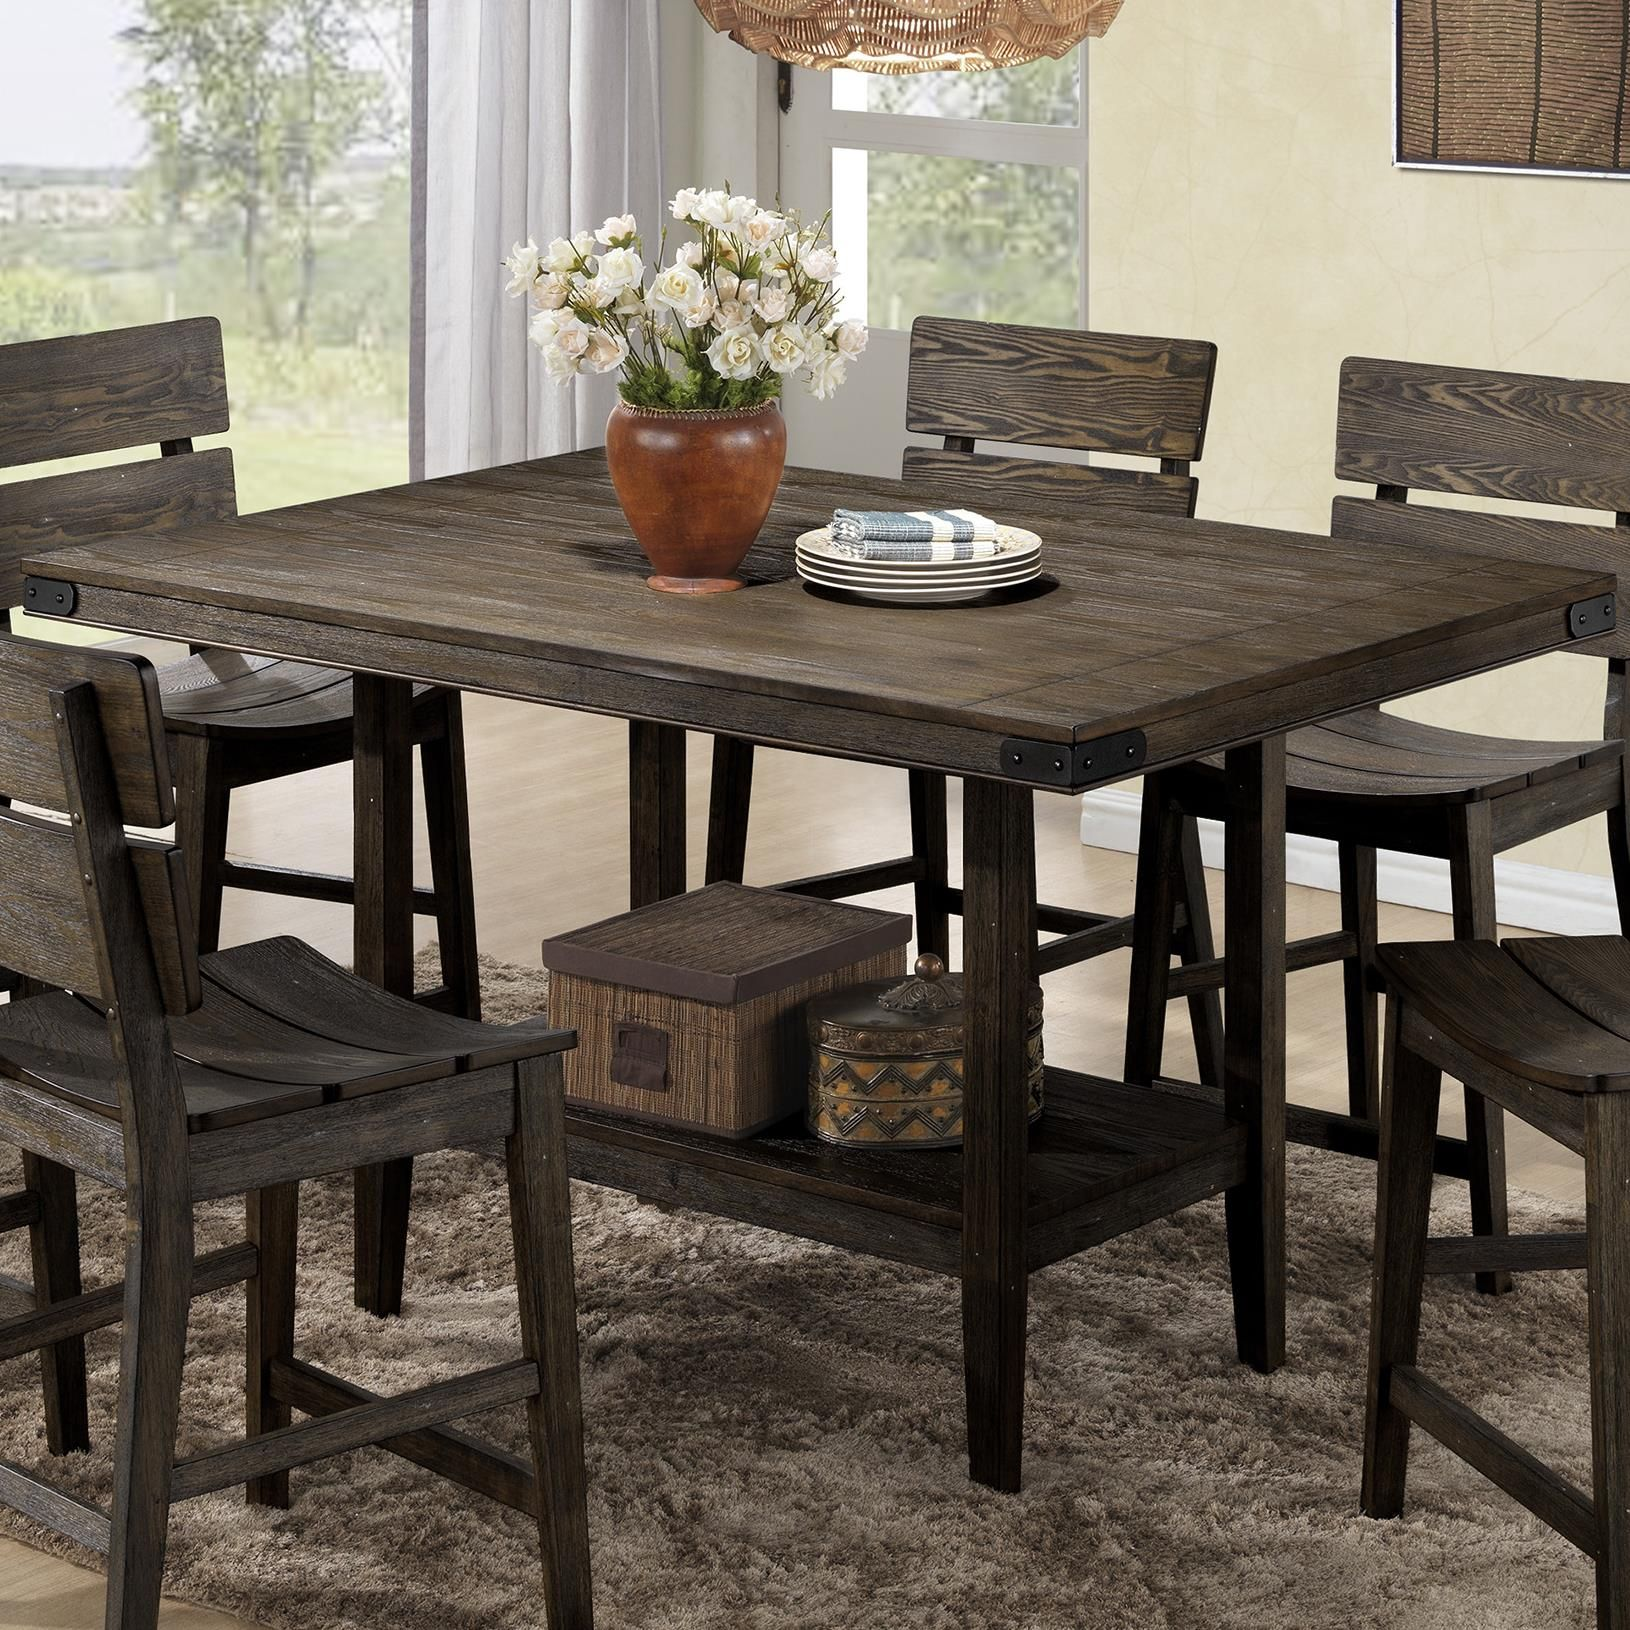 Brandon rustic counter height table by crown mark at